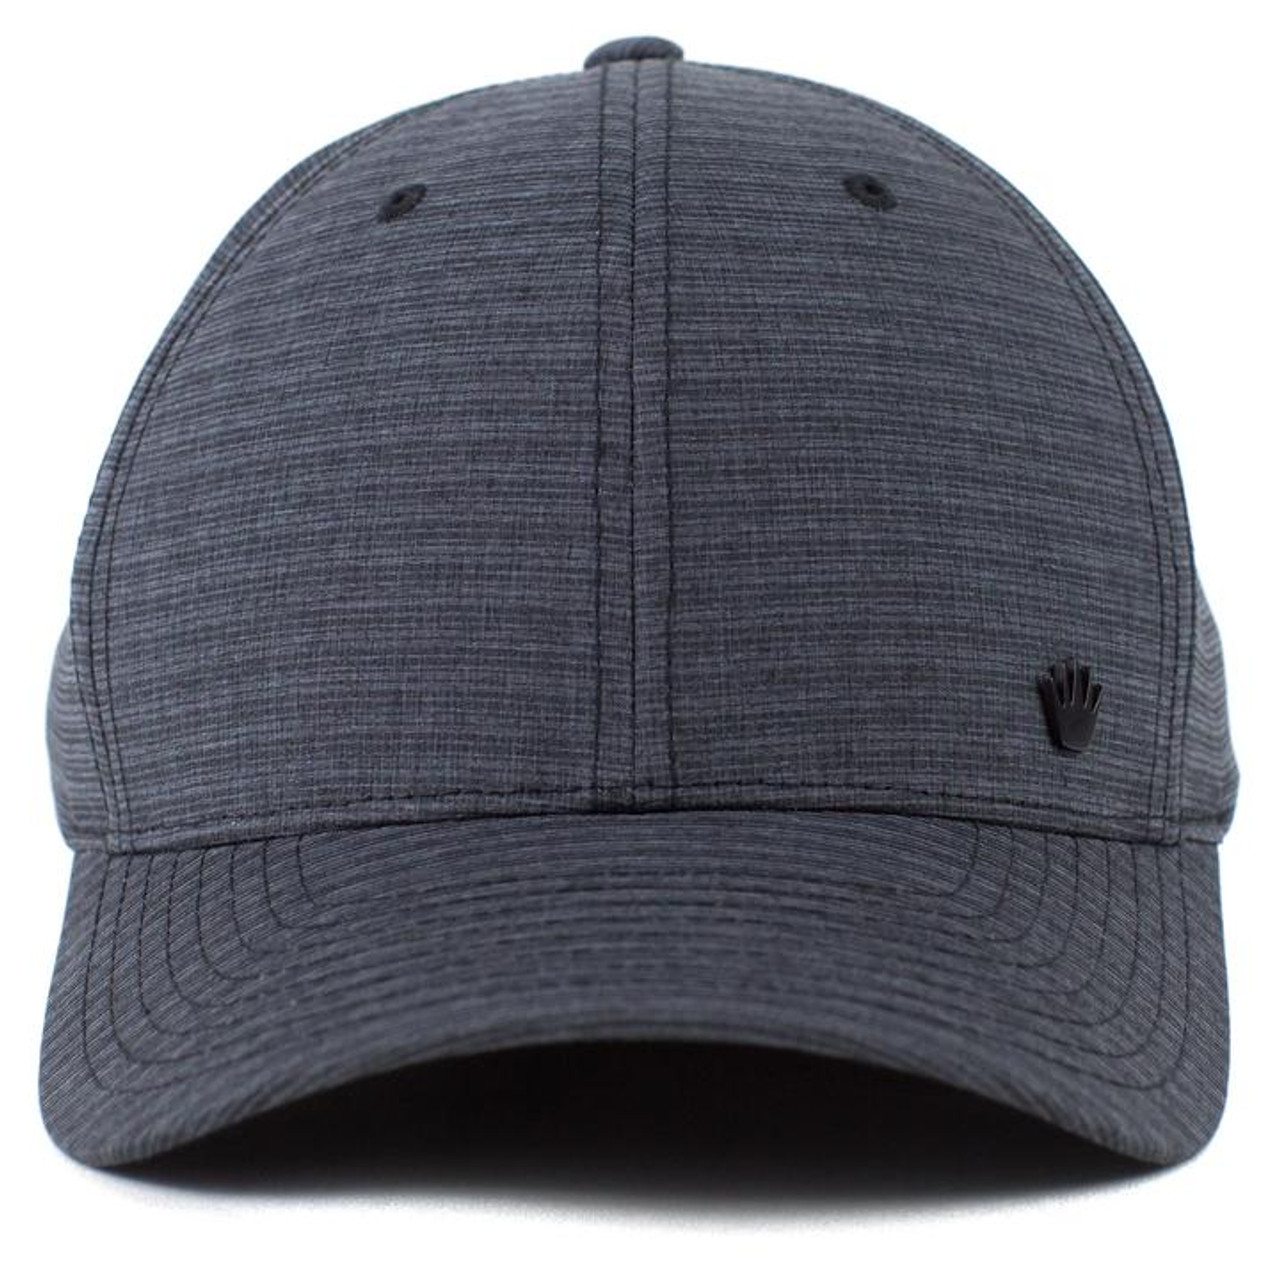 No Bad Ideas - Flexfit Cap - Mitchell - Black